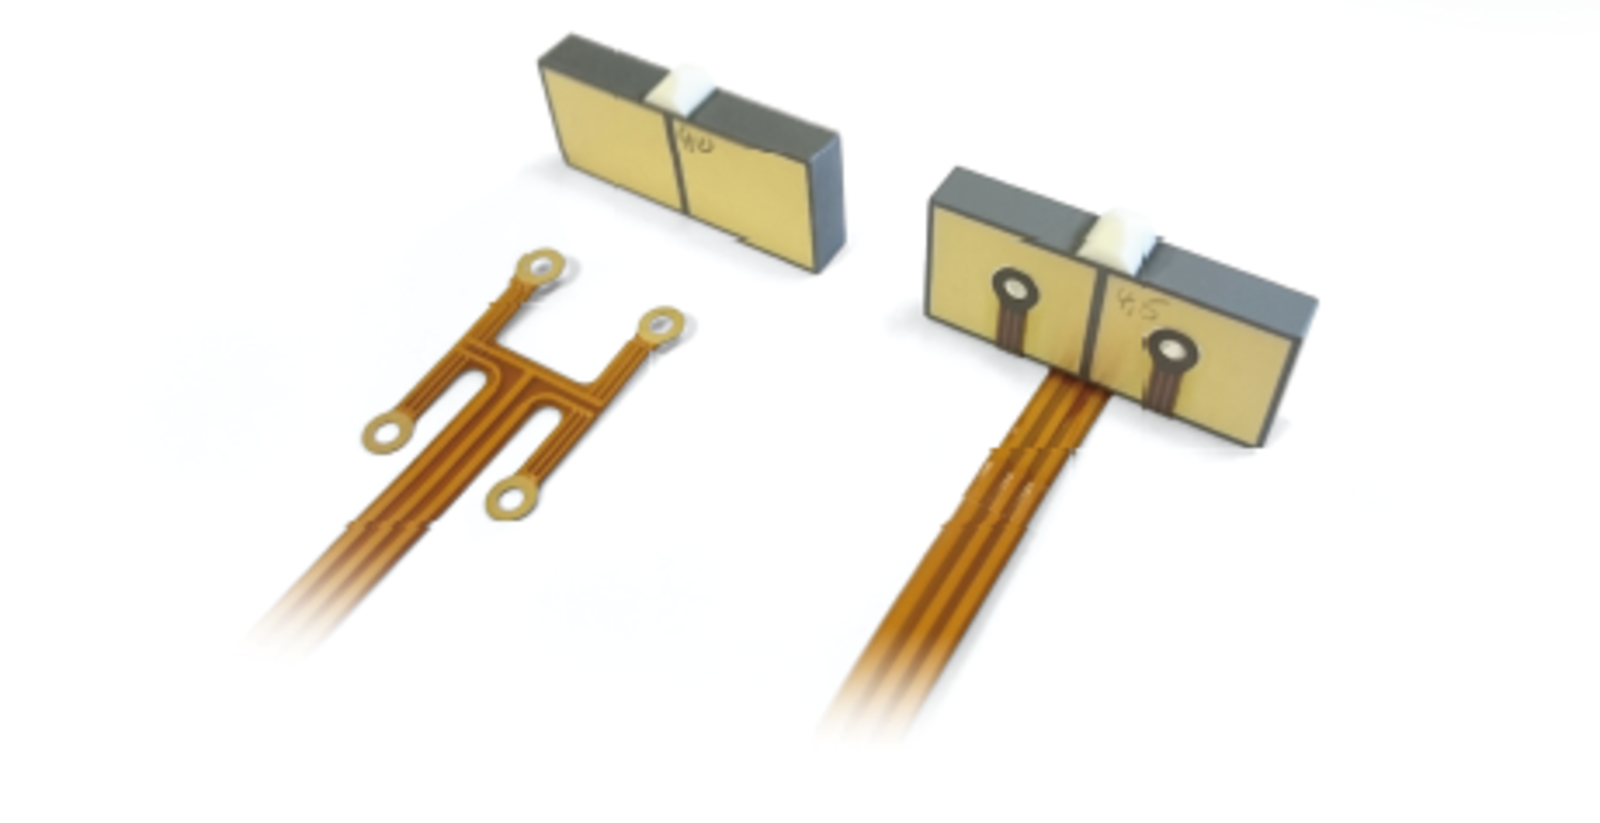 Smart Interface: Piezo Components with Flexible Printed Circuit Boards